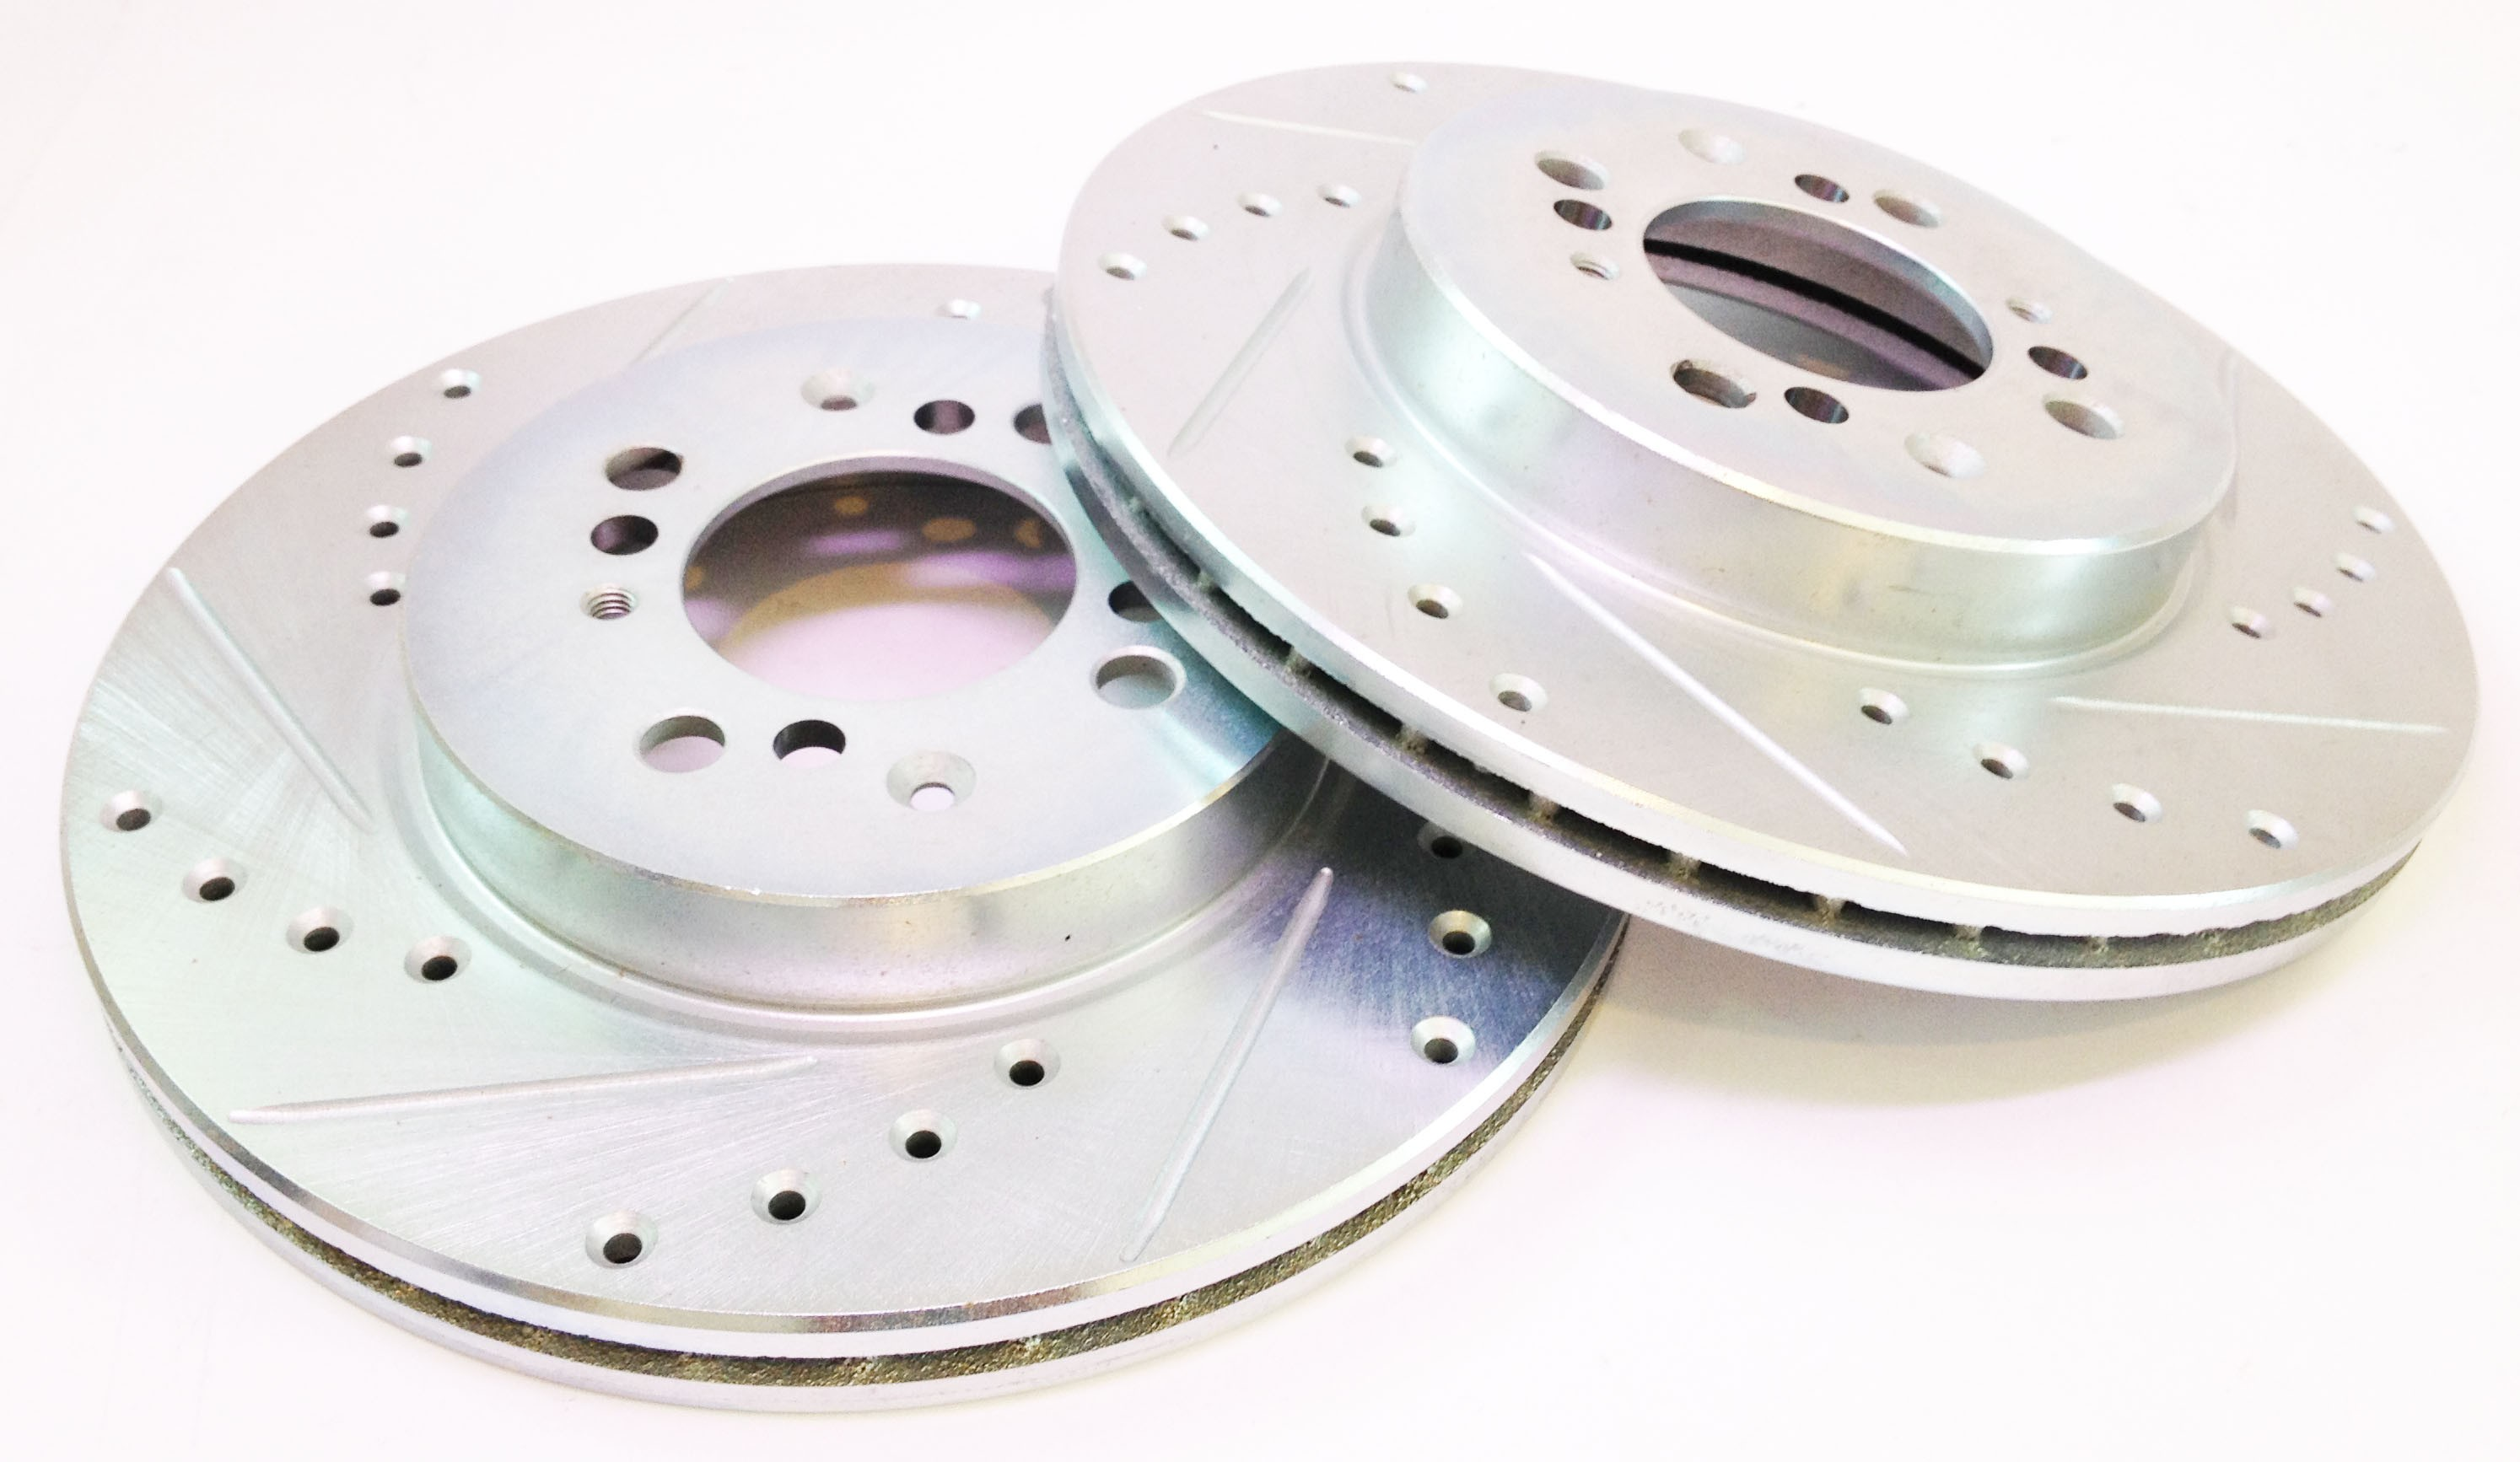 AE86 Front Brake Upgrade Rotors 2003 Mini Cooper S, 276mm slotted/drilled rotor for fc caliper kit for ae86